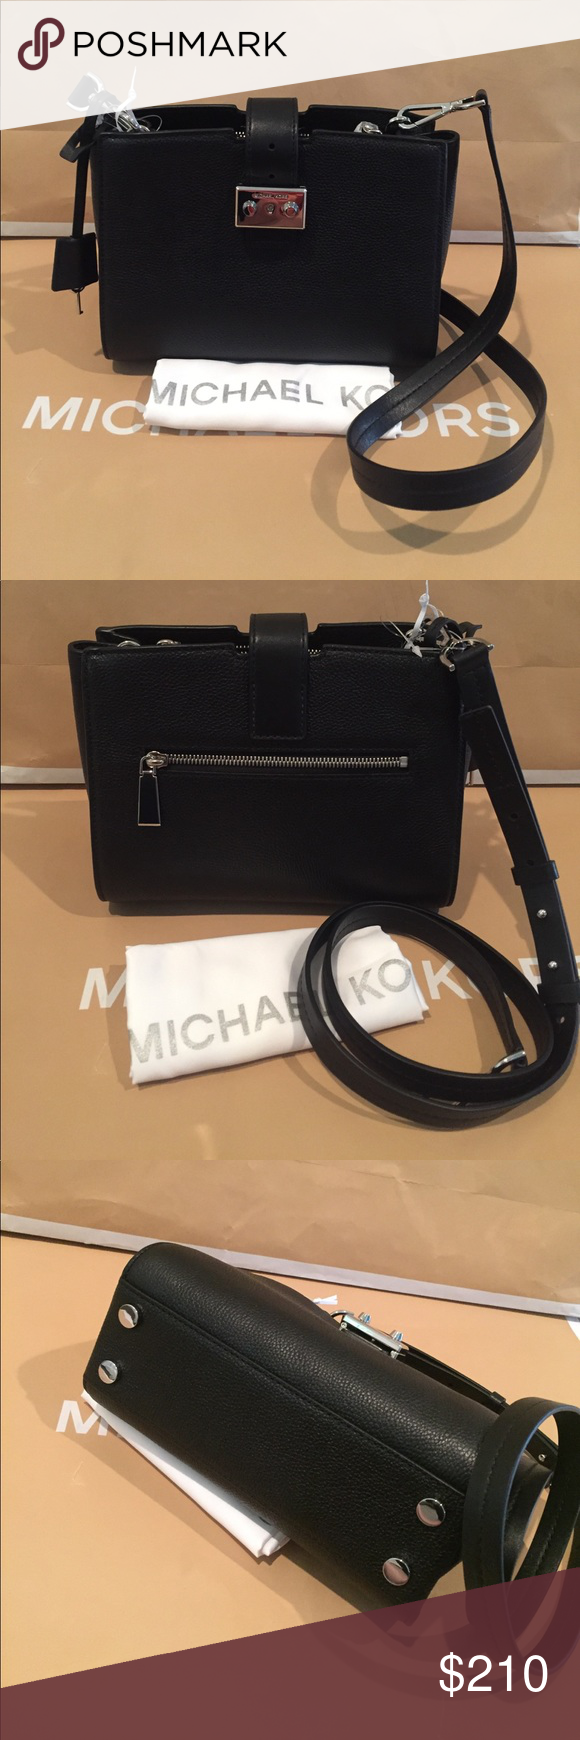 b4ad1423b5d5 🌹Michael Kors Bond Medium Leather Messenger Bag 100% Authentic The Bond  Messenger from Michael